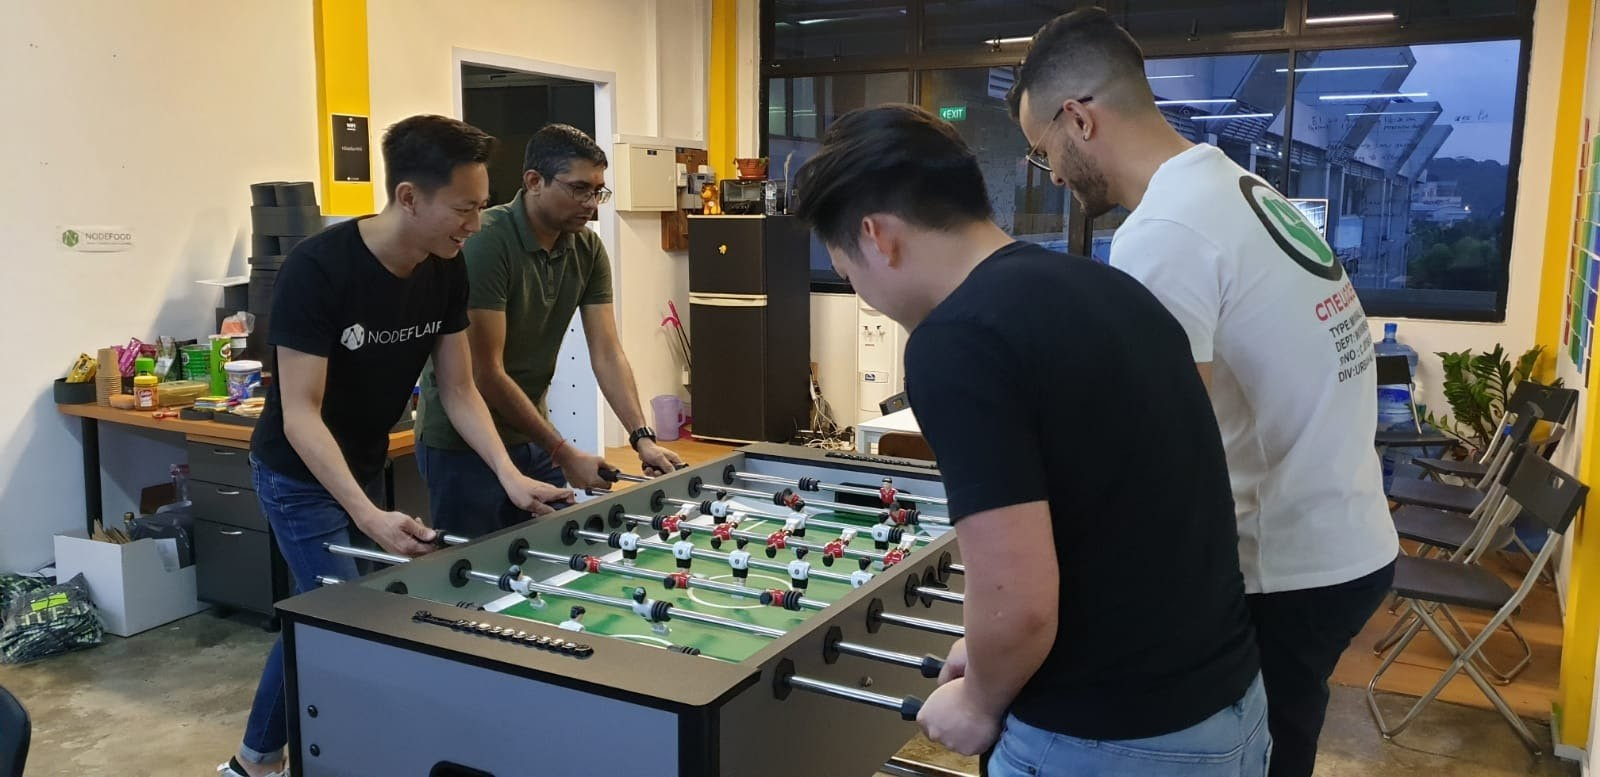 Developers and talent advocates enjoy a game of foosball at the NodeFlair office